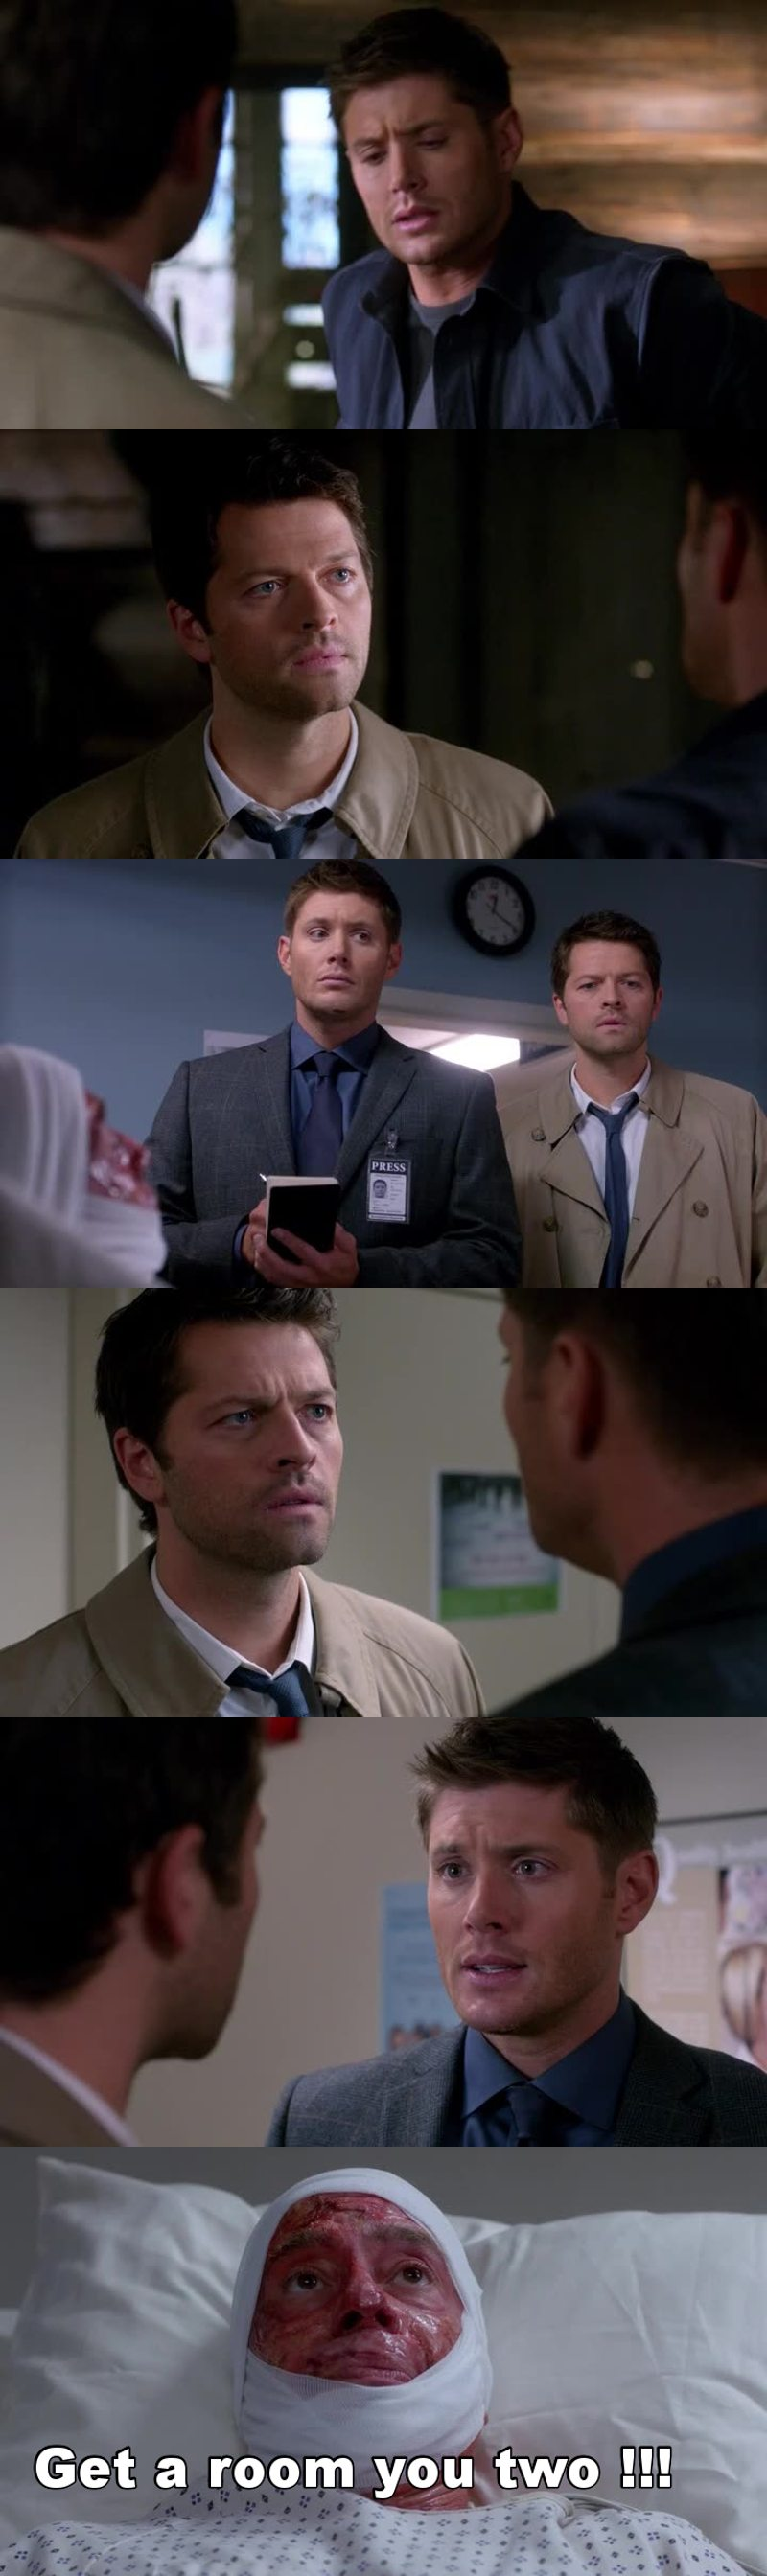 ladies and gentlemen winner of choice tv chemistry Destiel😍  Ship it for fucking everrr❤️❤️❤️